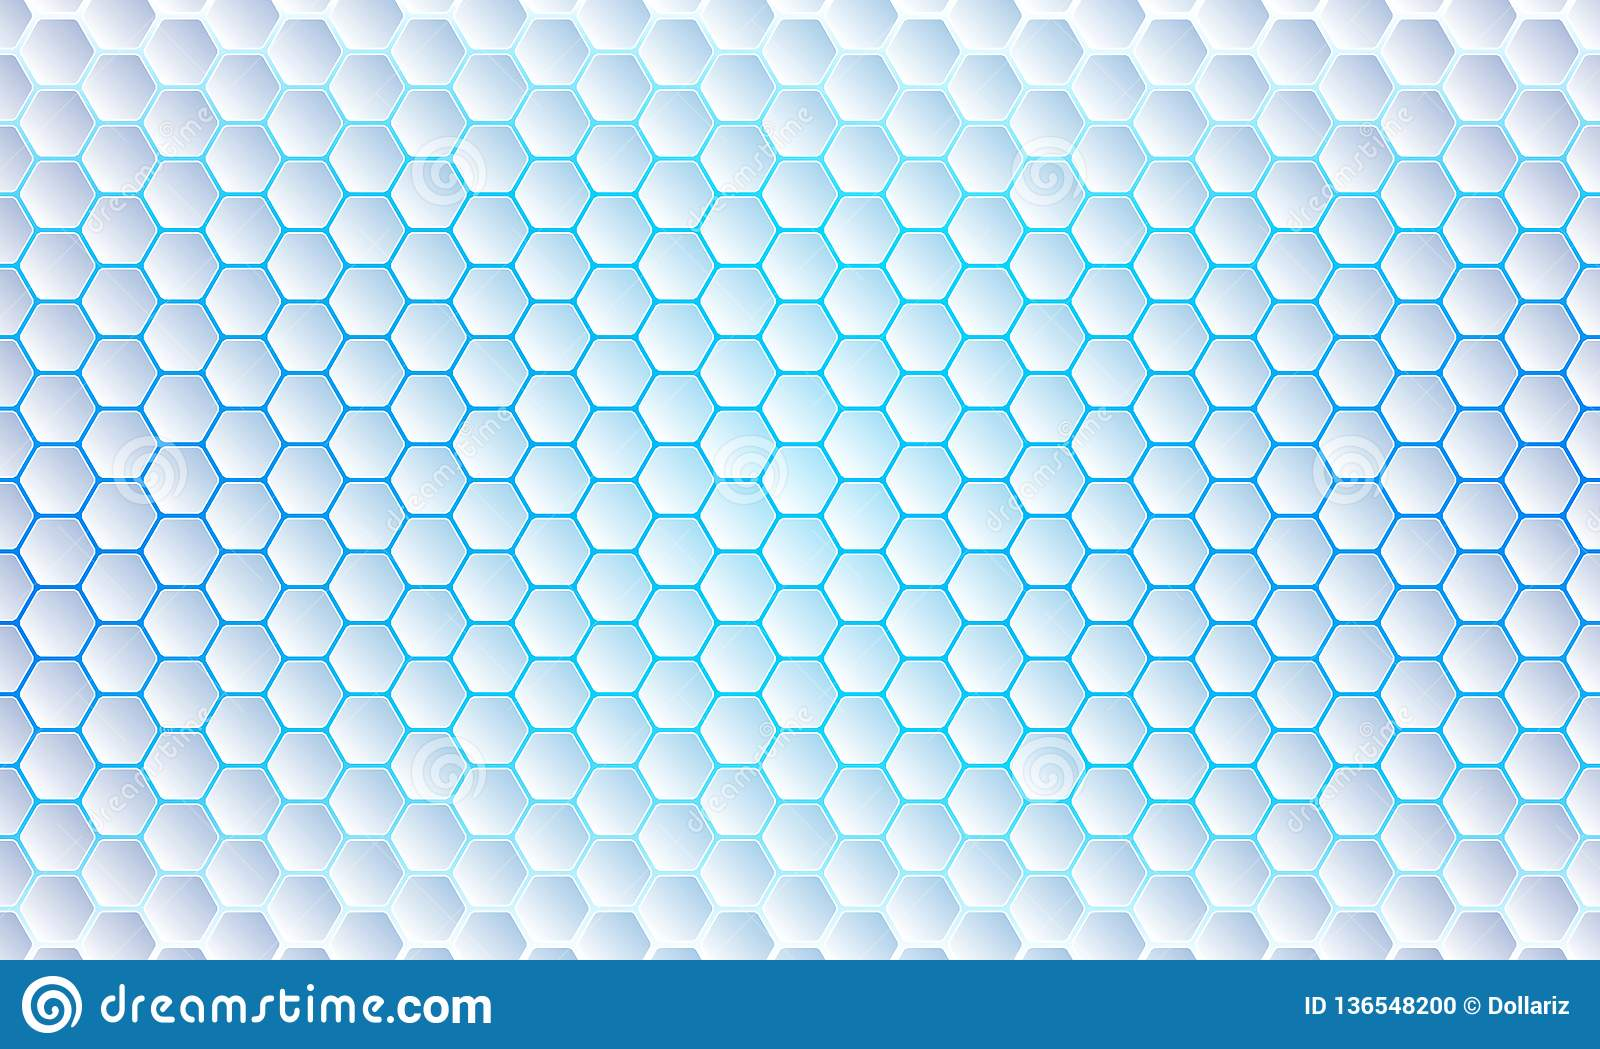 Blue Hexagon background, modern abstract, futuristic geometric vector background